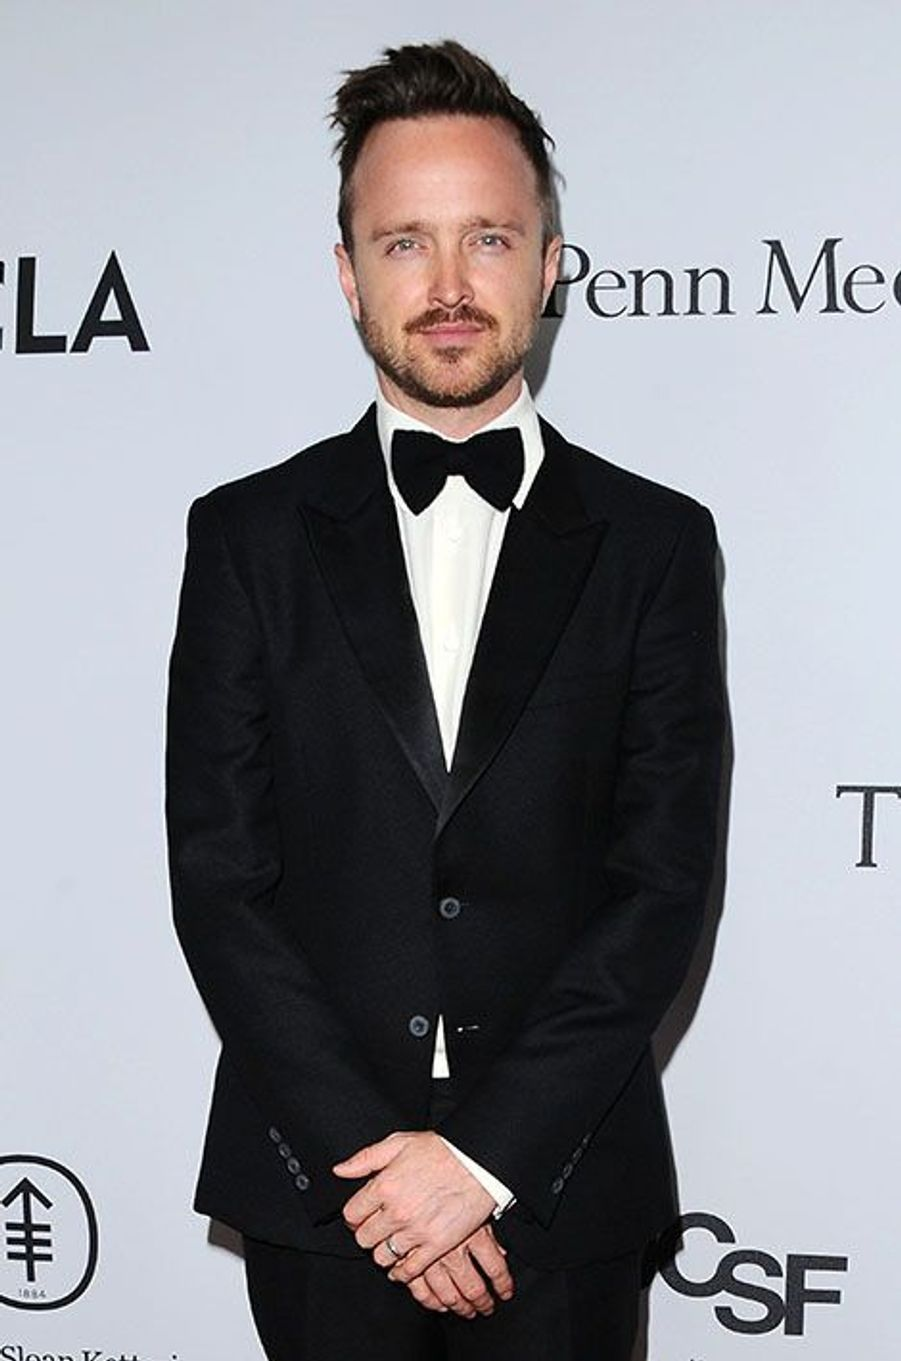 Aaron Paul à Los Angeles, le 13 avril 2016